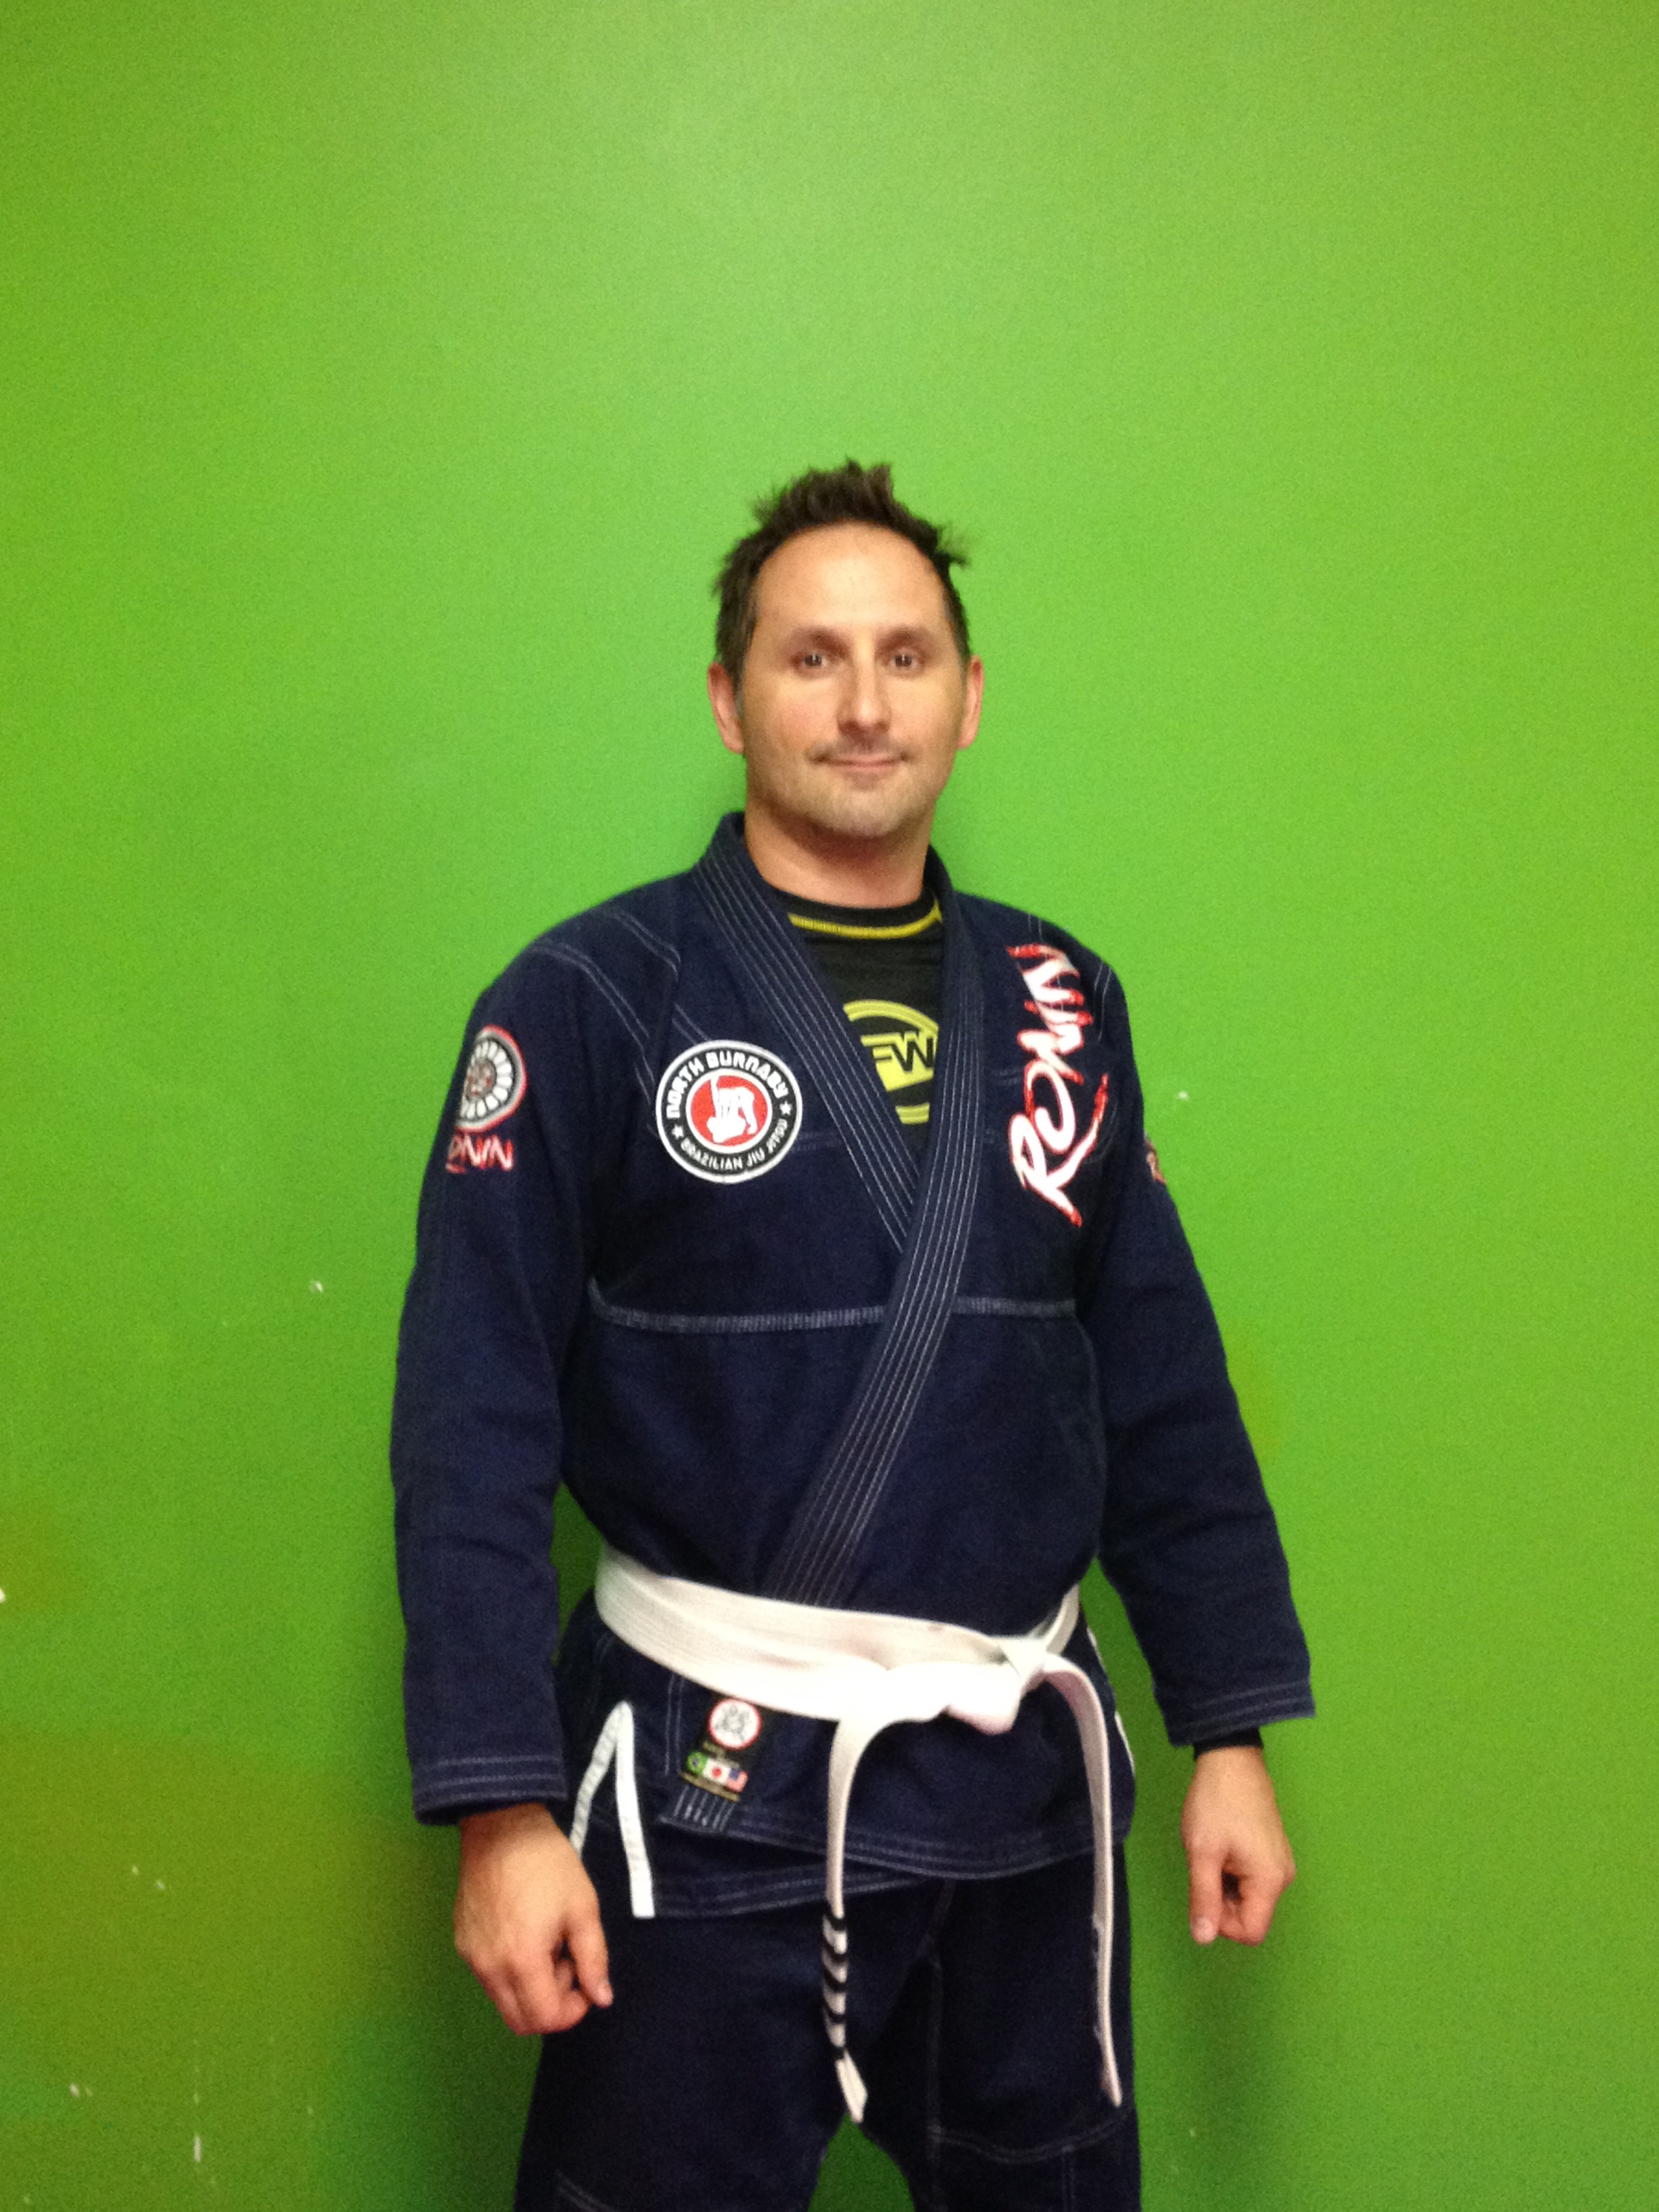 Jason Ruiter, Owner Metro Taekwondo Studio, Martial Arts school in Burnaby